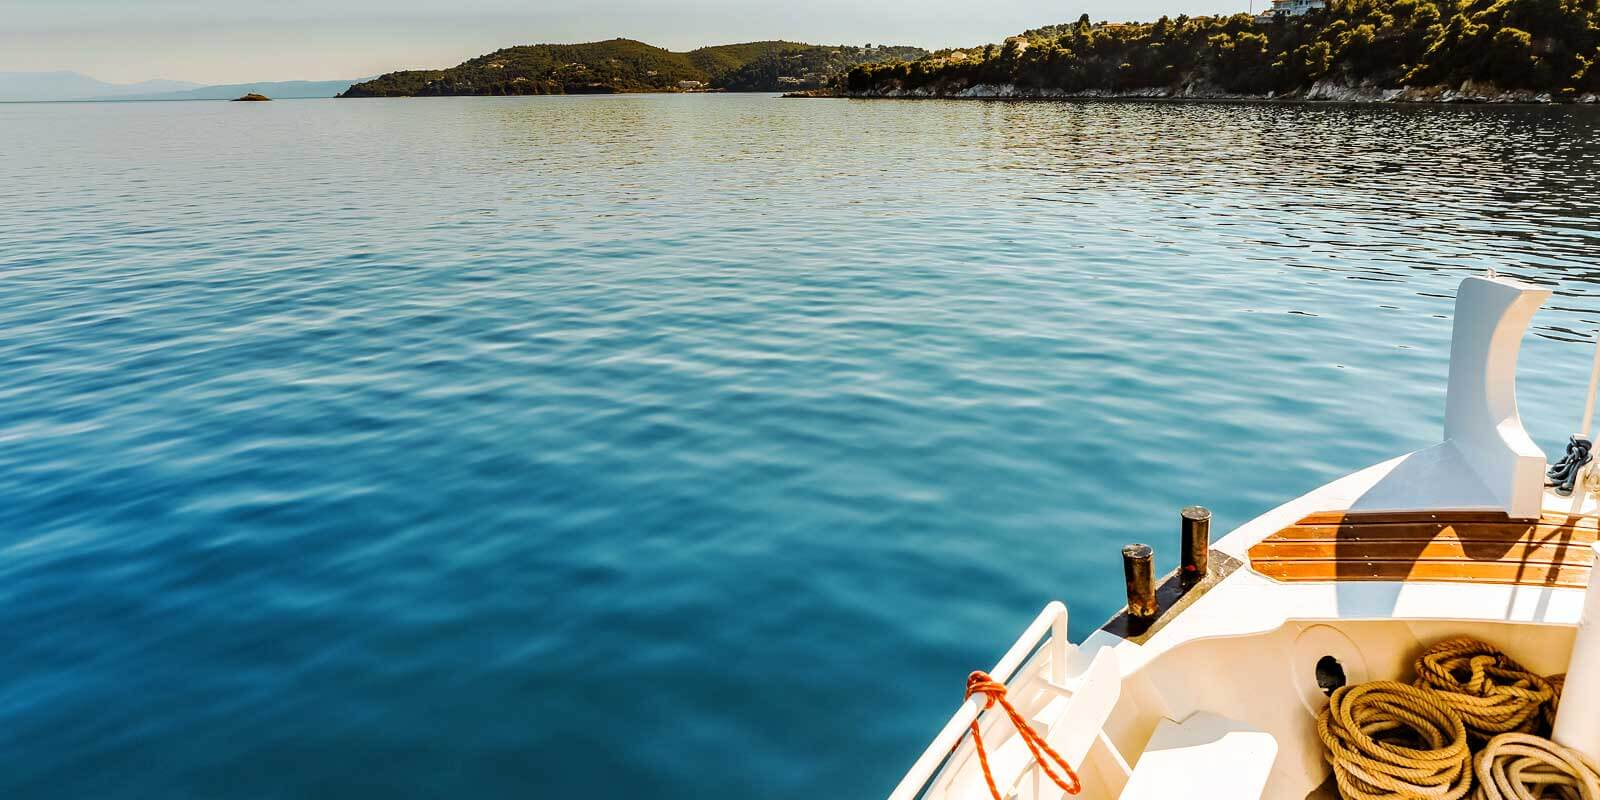 Sail the islands between Greece + Turkey in an epic adventure